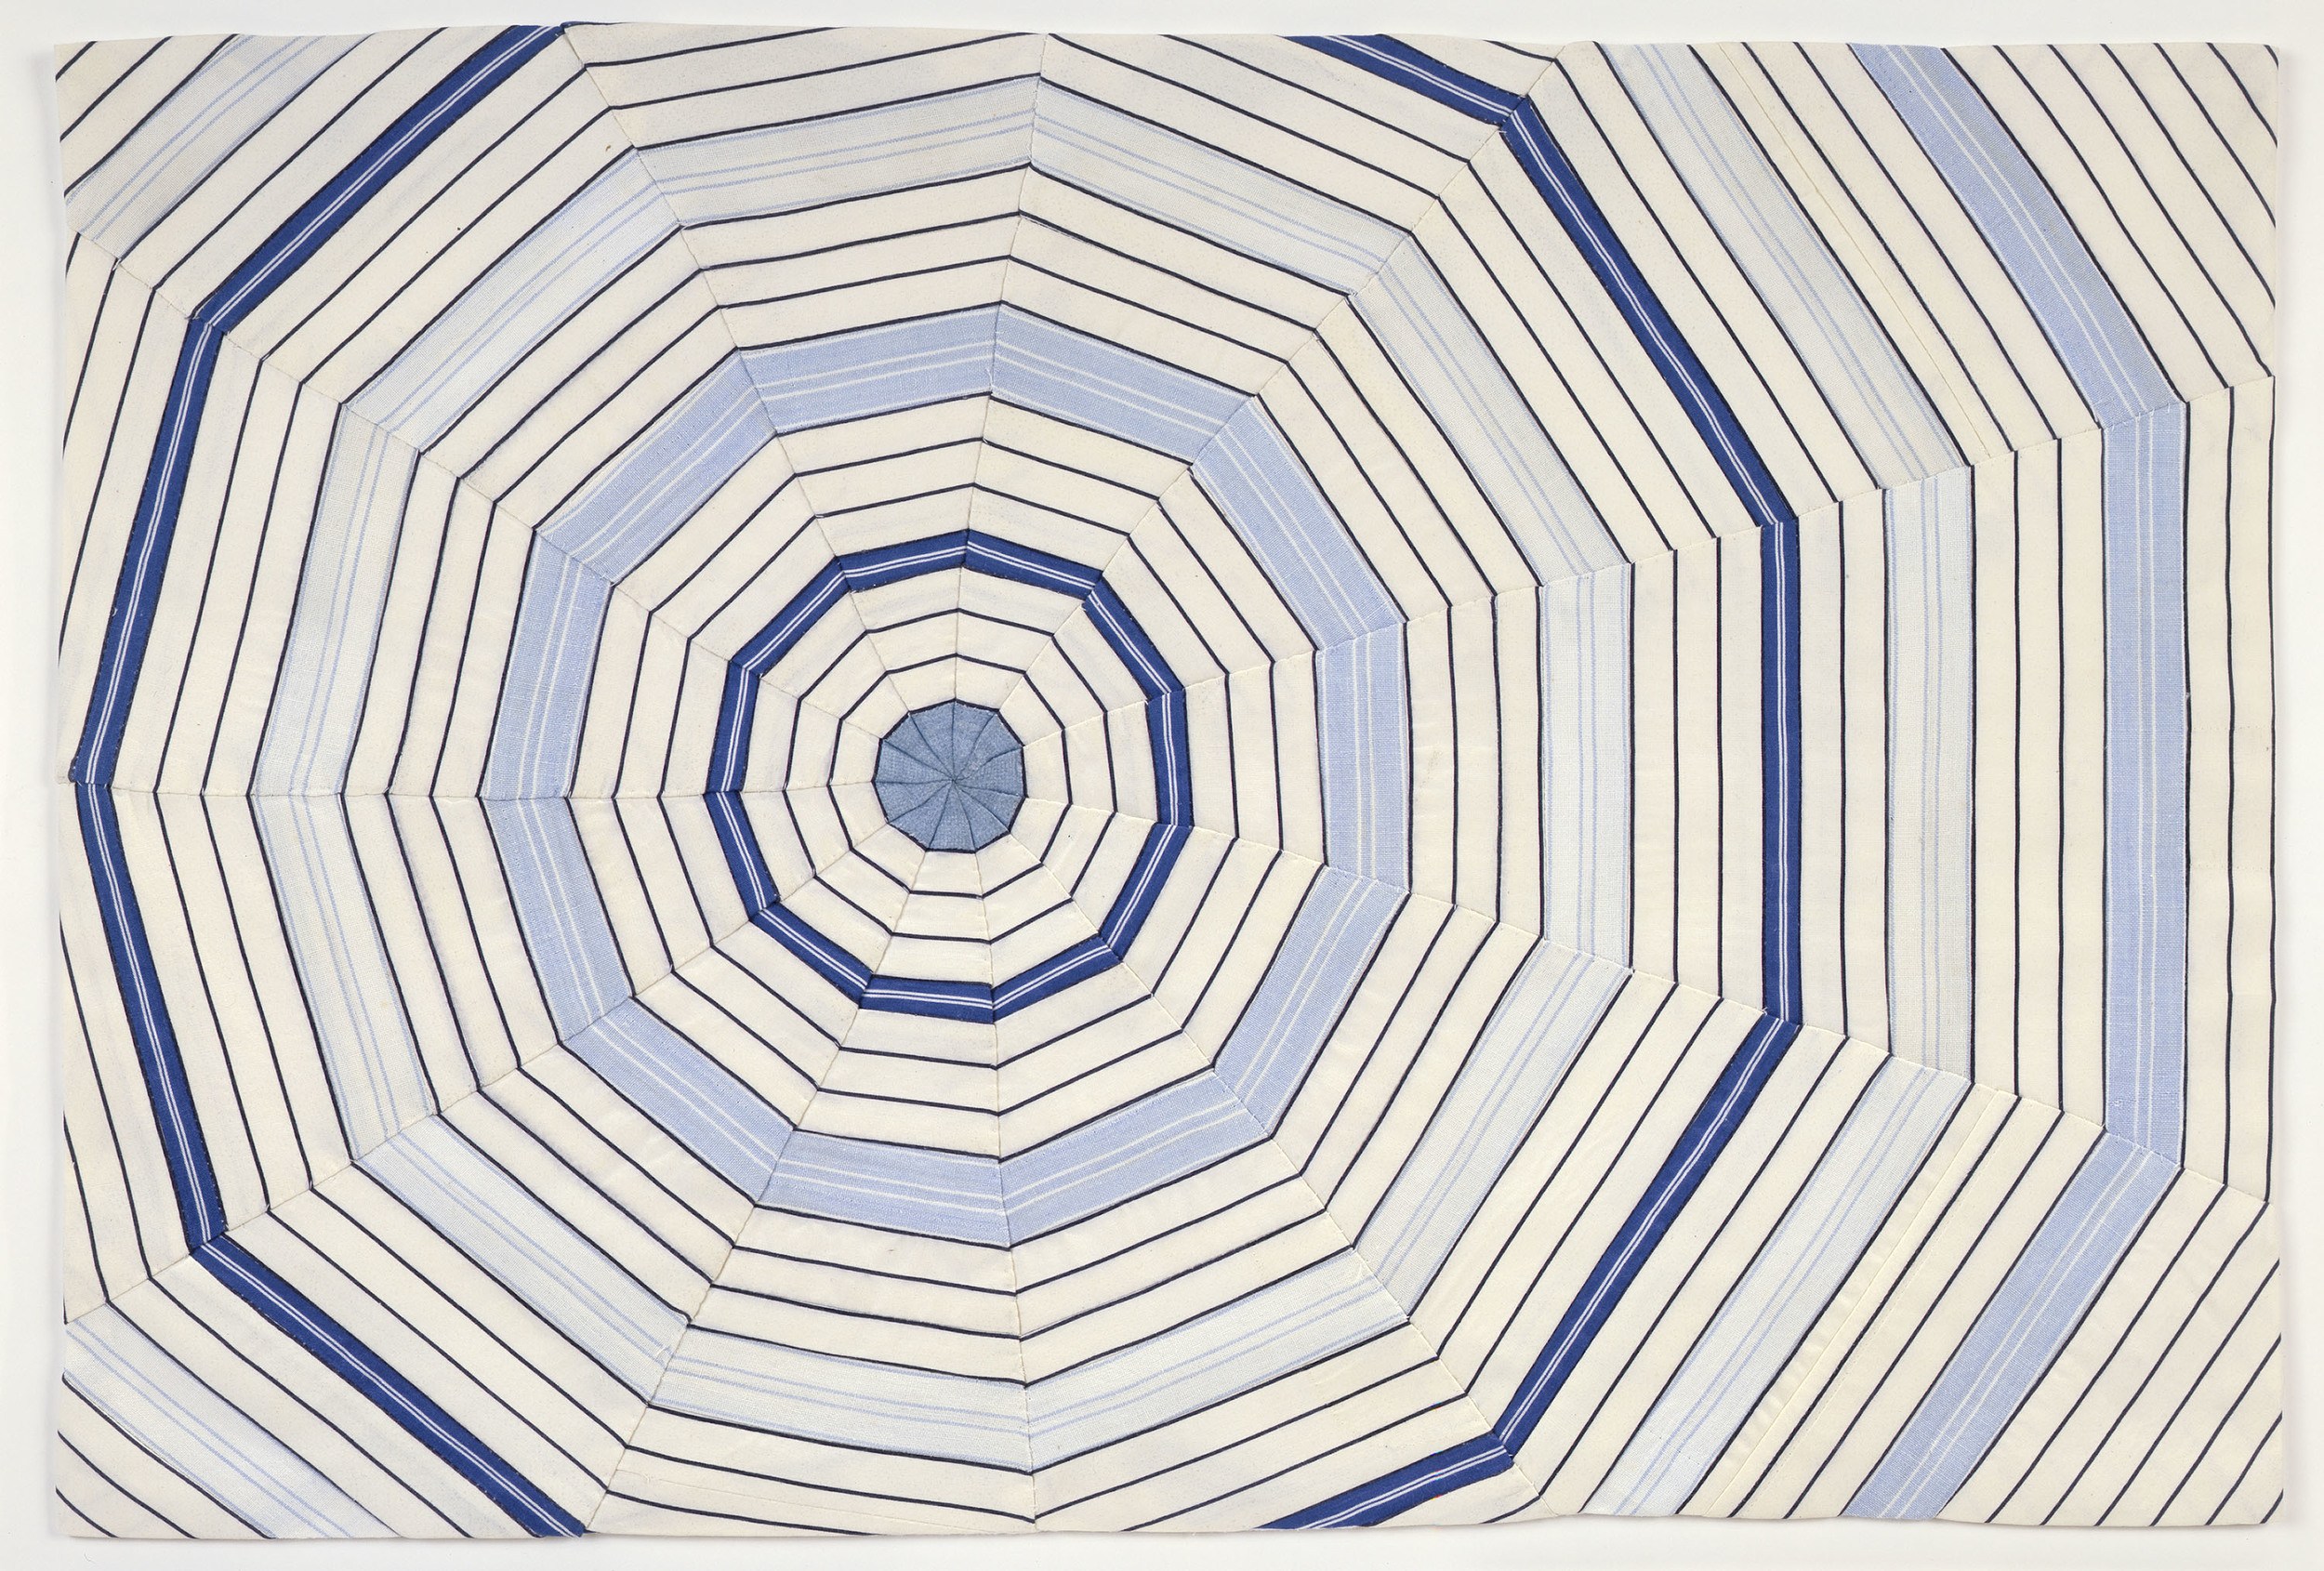 Louise Bourgeois,  Untitled , 2006, Fabric, 15 x 22 1/4 inches. Courtesy Cheim & Read, New York. The Easton Foundation/ Licensed by VAGA, New York, NY.